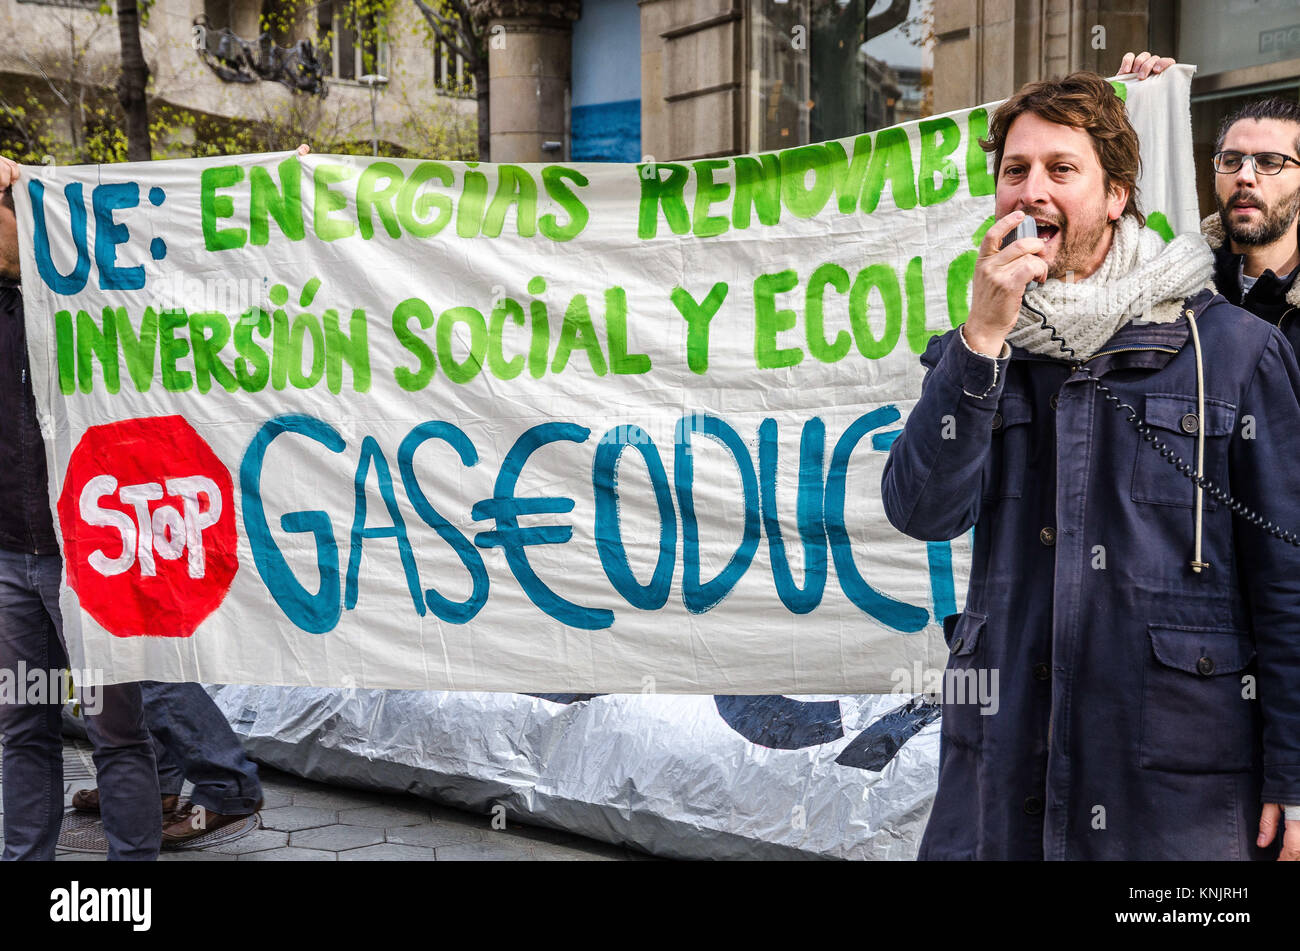 Barcelona, Catalonia, Spain. 12th Dec, 2017. Journalist and activist Bruno Sokolowicz seen during his speech at - Stock Image